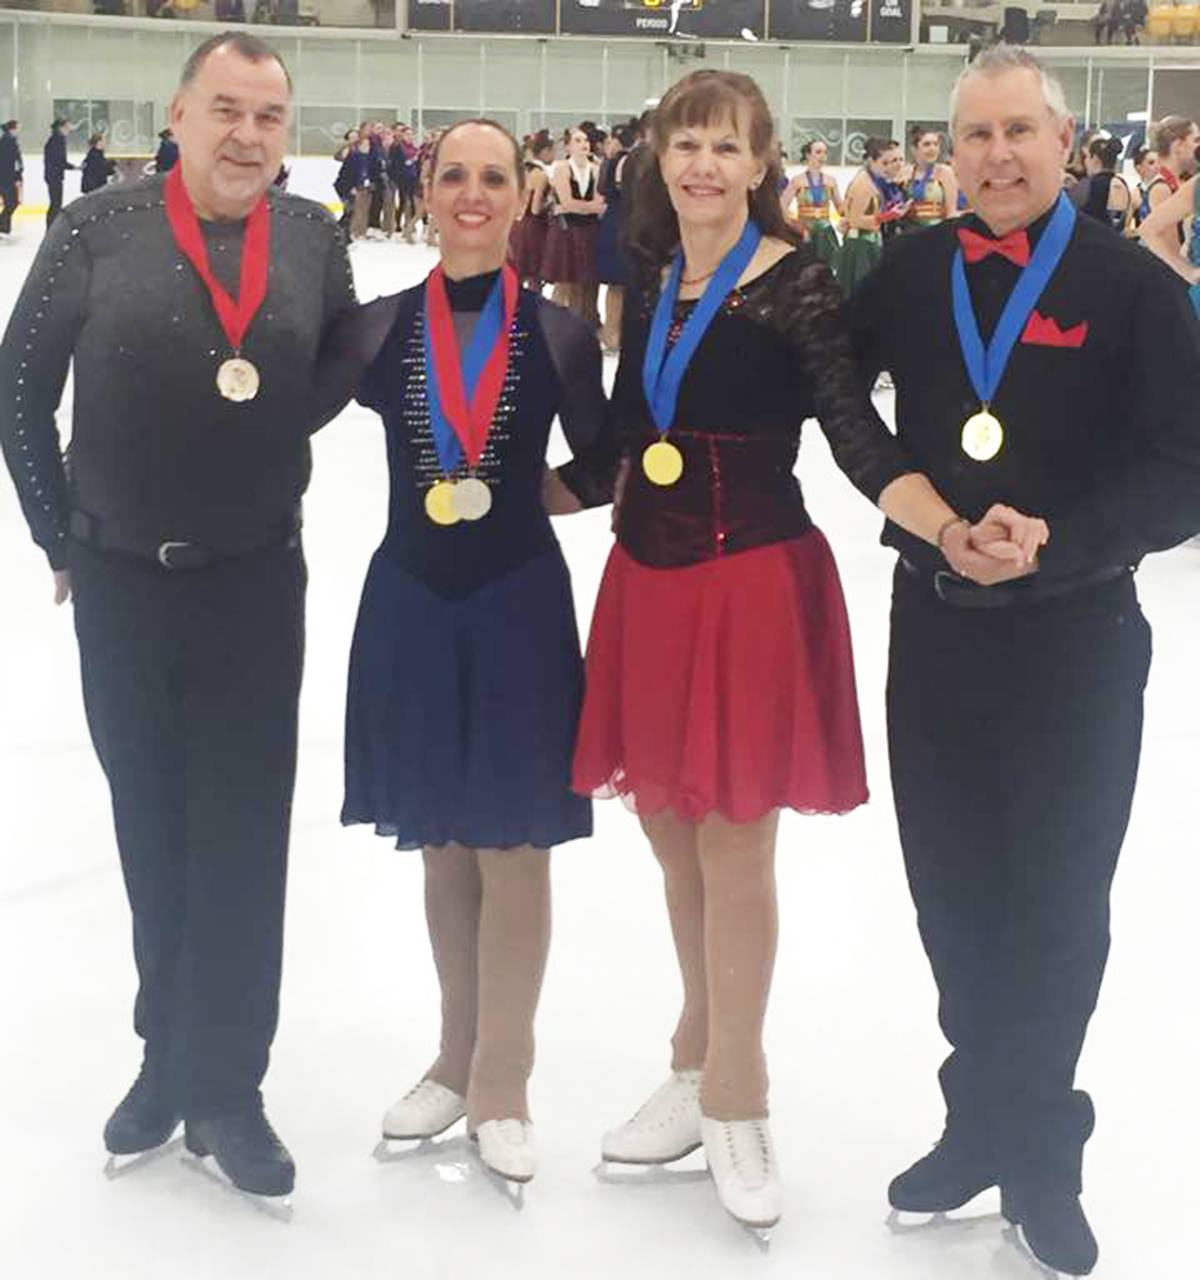 SUBMITTED PHOTO From left are the adult skating competition winners Len Morris, Nancy Edwards, Susan Edwards and James Wilkins.